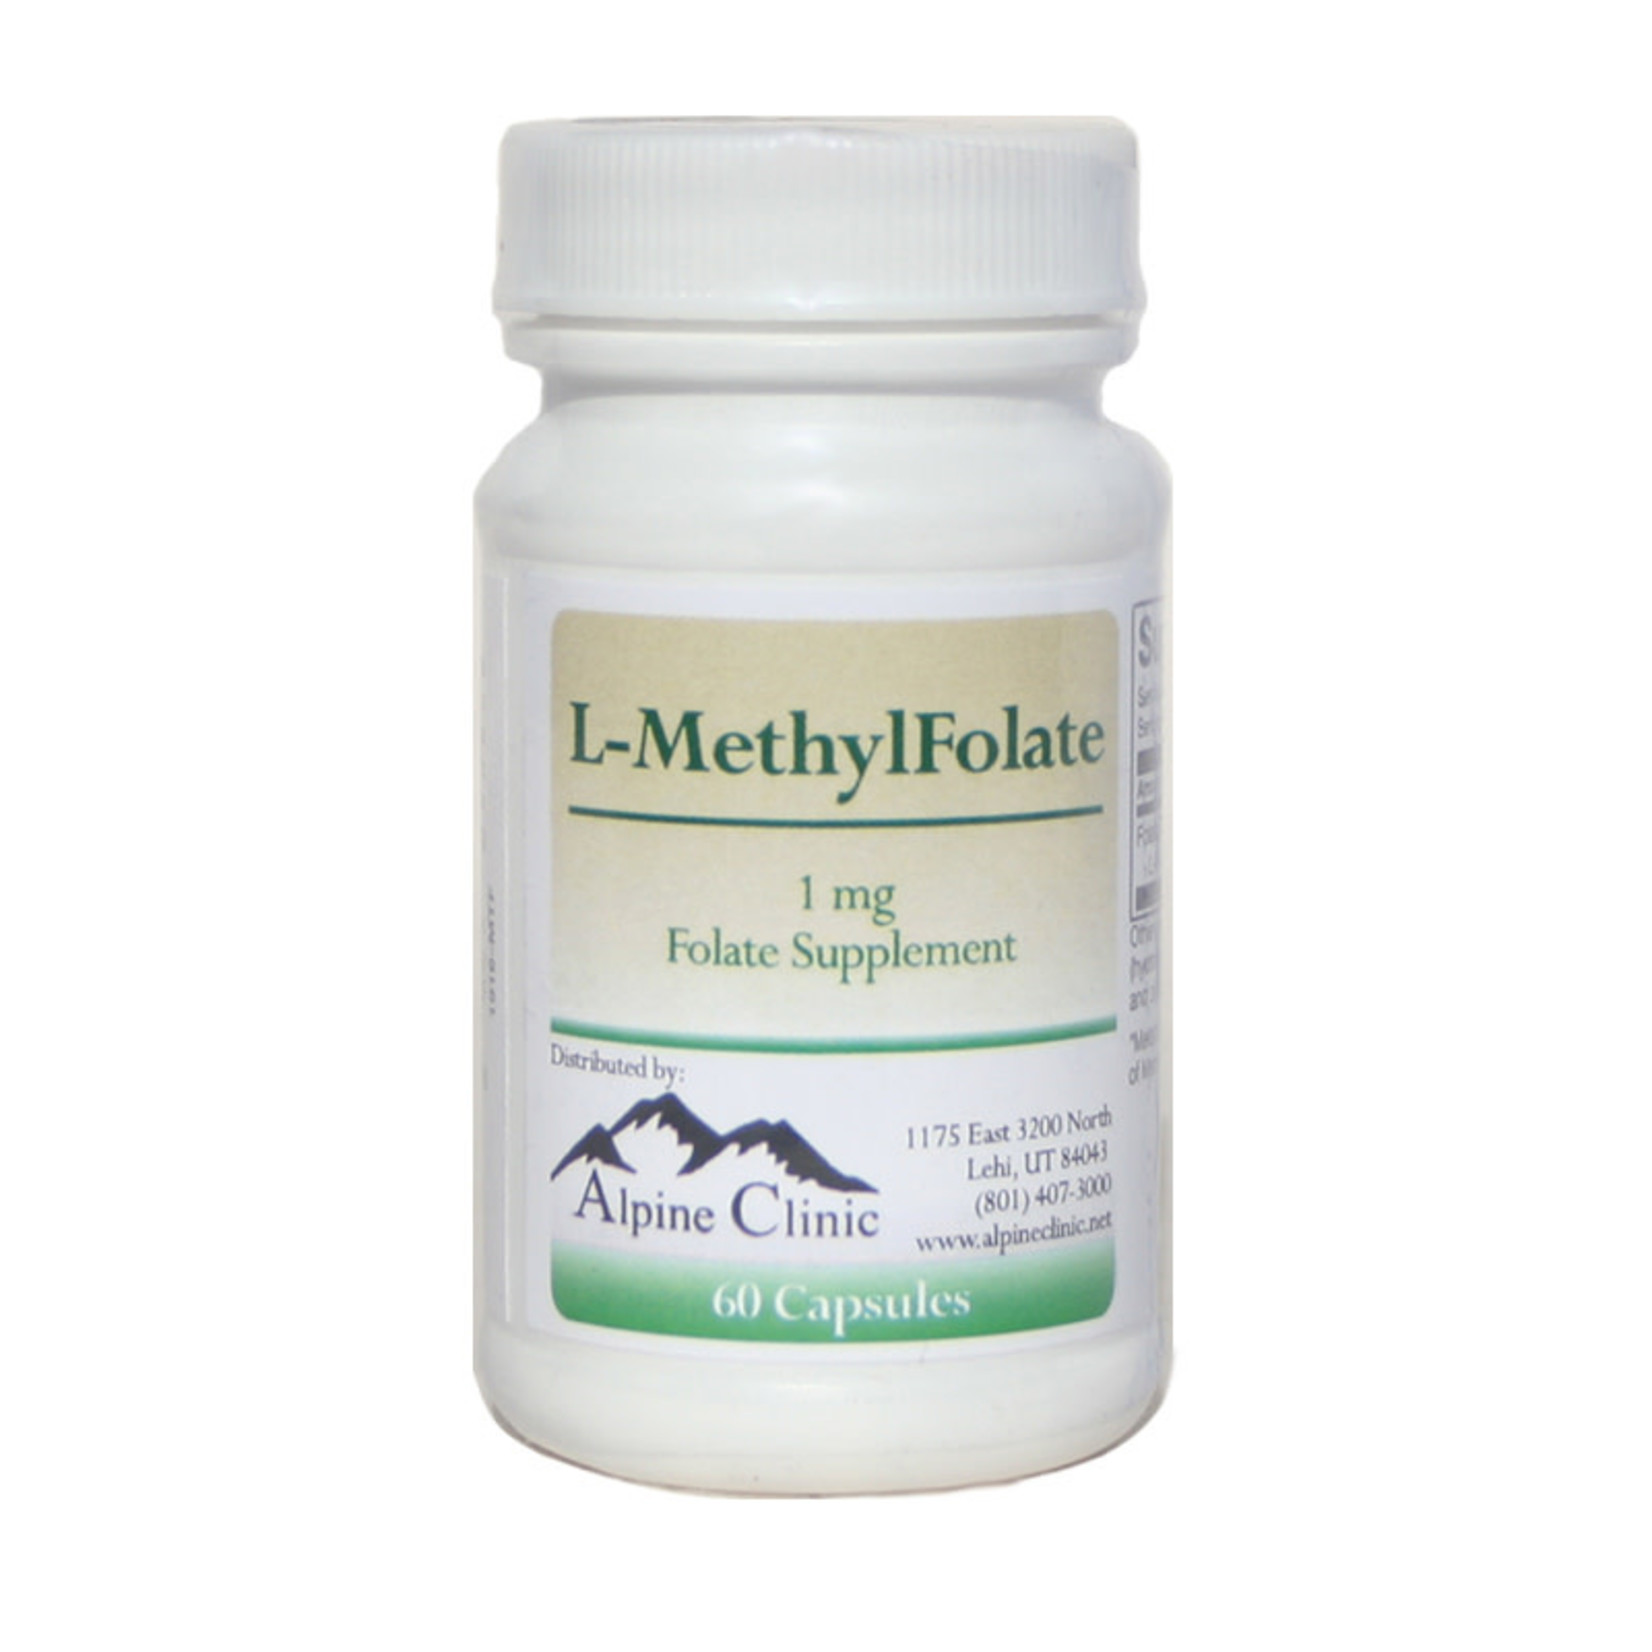 Alpine Clinic Private Label L-MethylFolate - 60 Caps - 1 mg